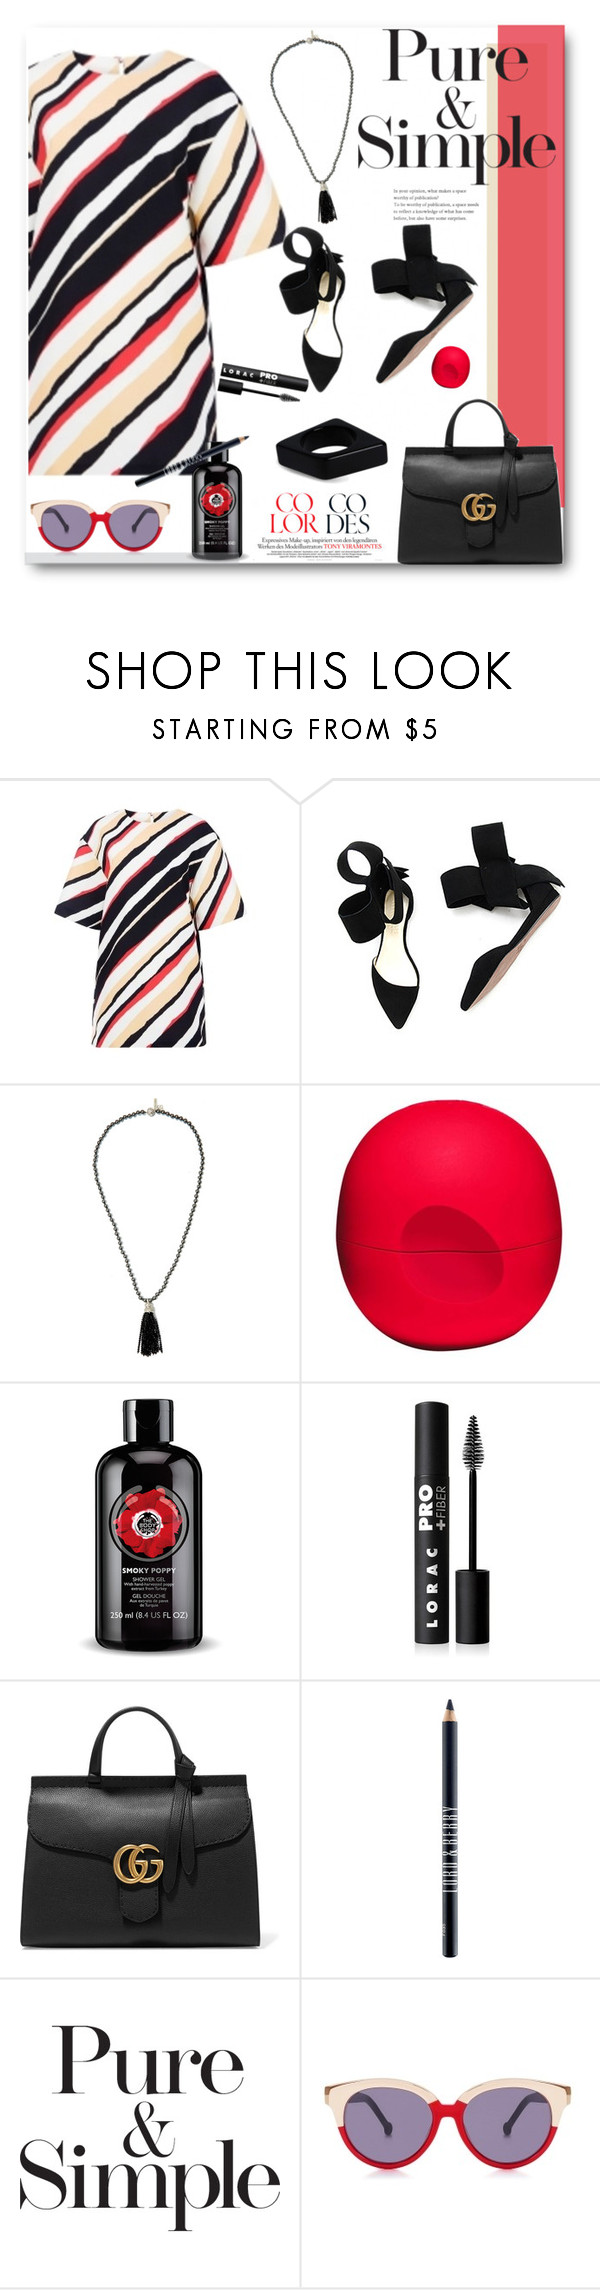 """""""Pure & Simple in Stripes"""" by prettynposh2 ❤ liked on Polyvore featuring TIBI, Oscar de la Renta, Eos, LORAC, Gucci, Lord & Berry, Pure & Simple, Karen Walker, Marni and stripes"""